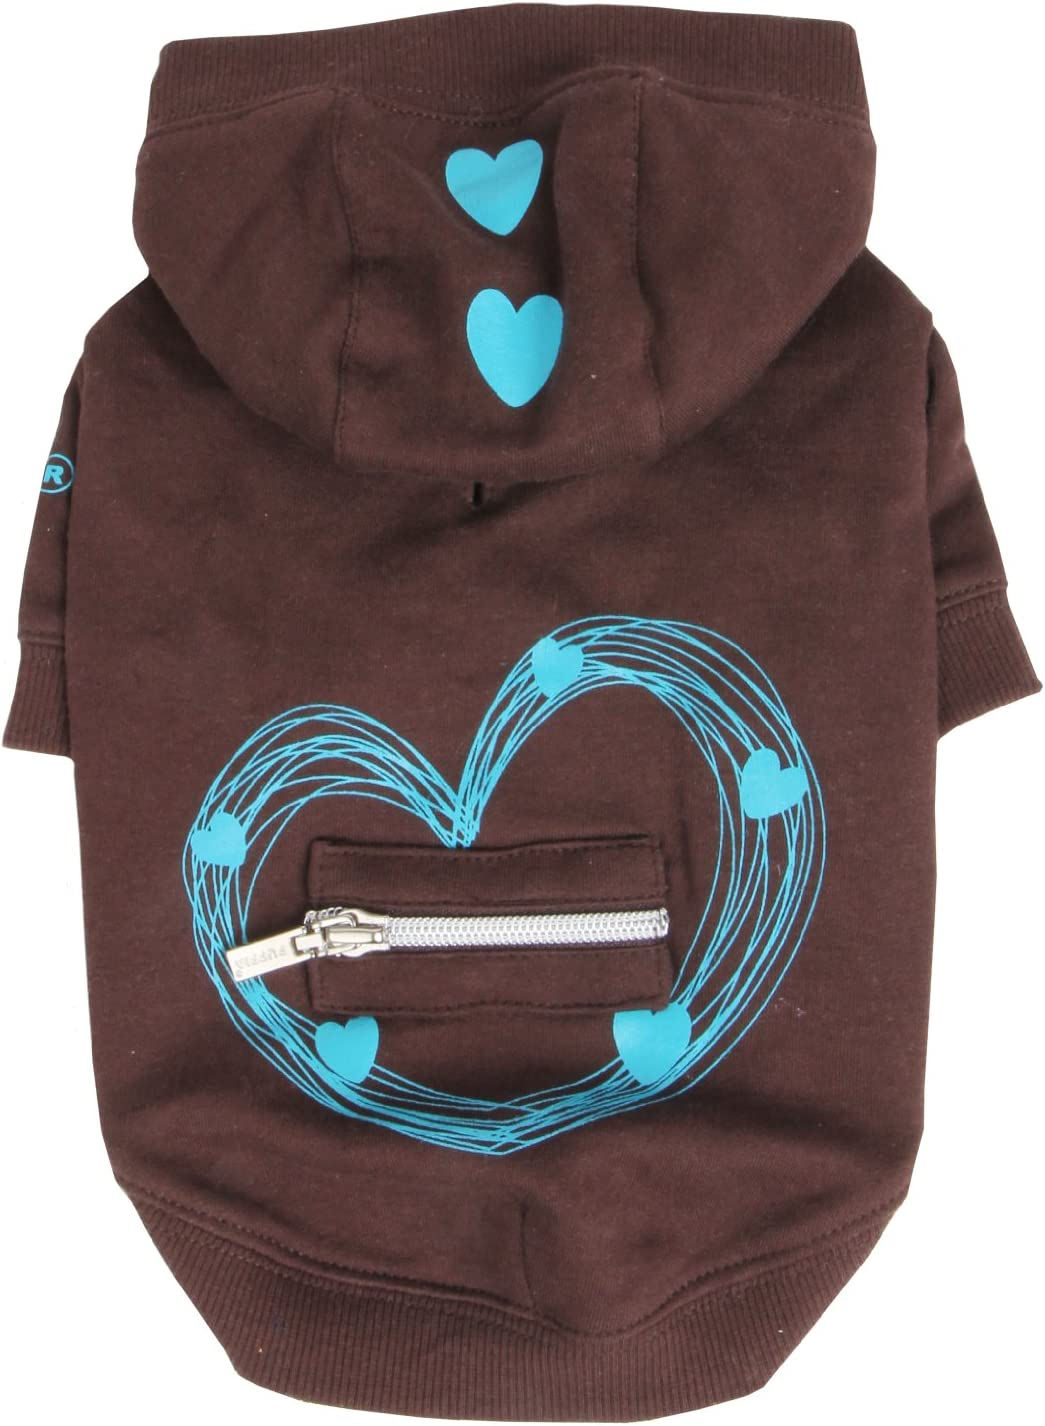 Max Baltimore Mall 90% OFF Puppia Serenade Hoodie Brown XX-Large